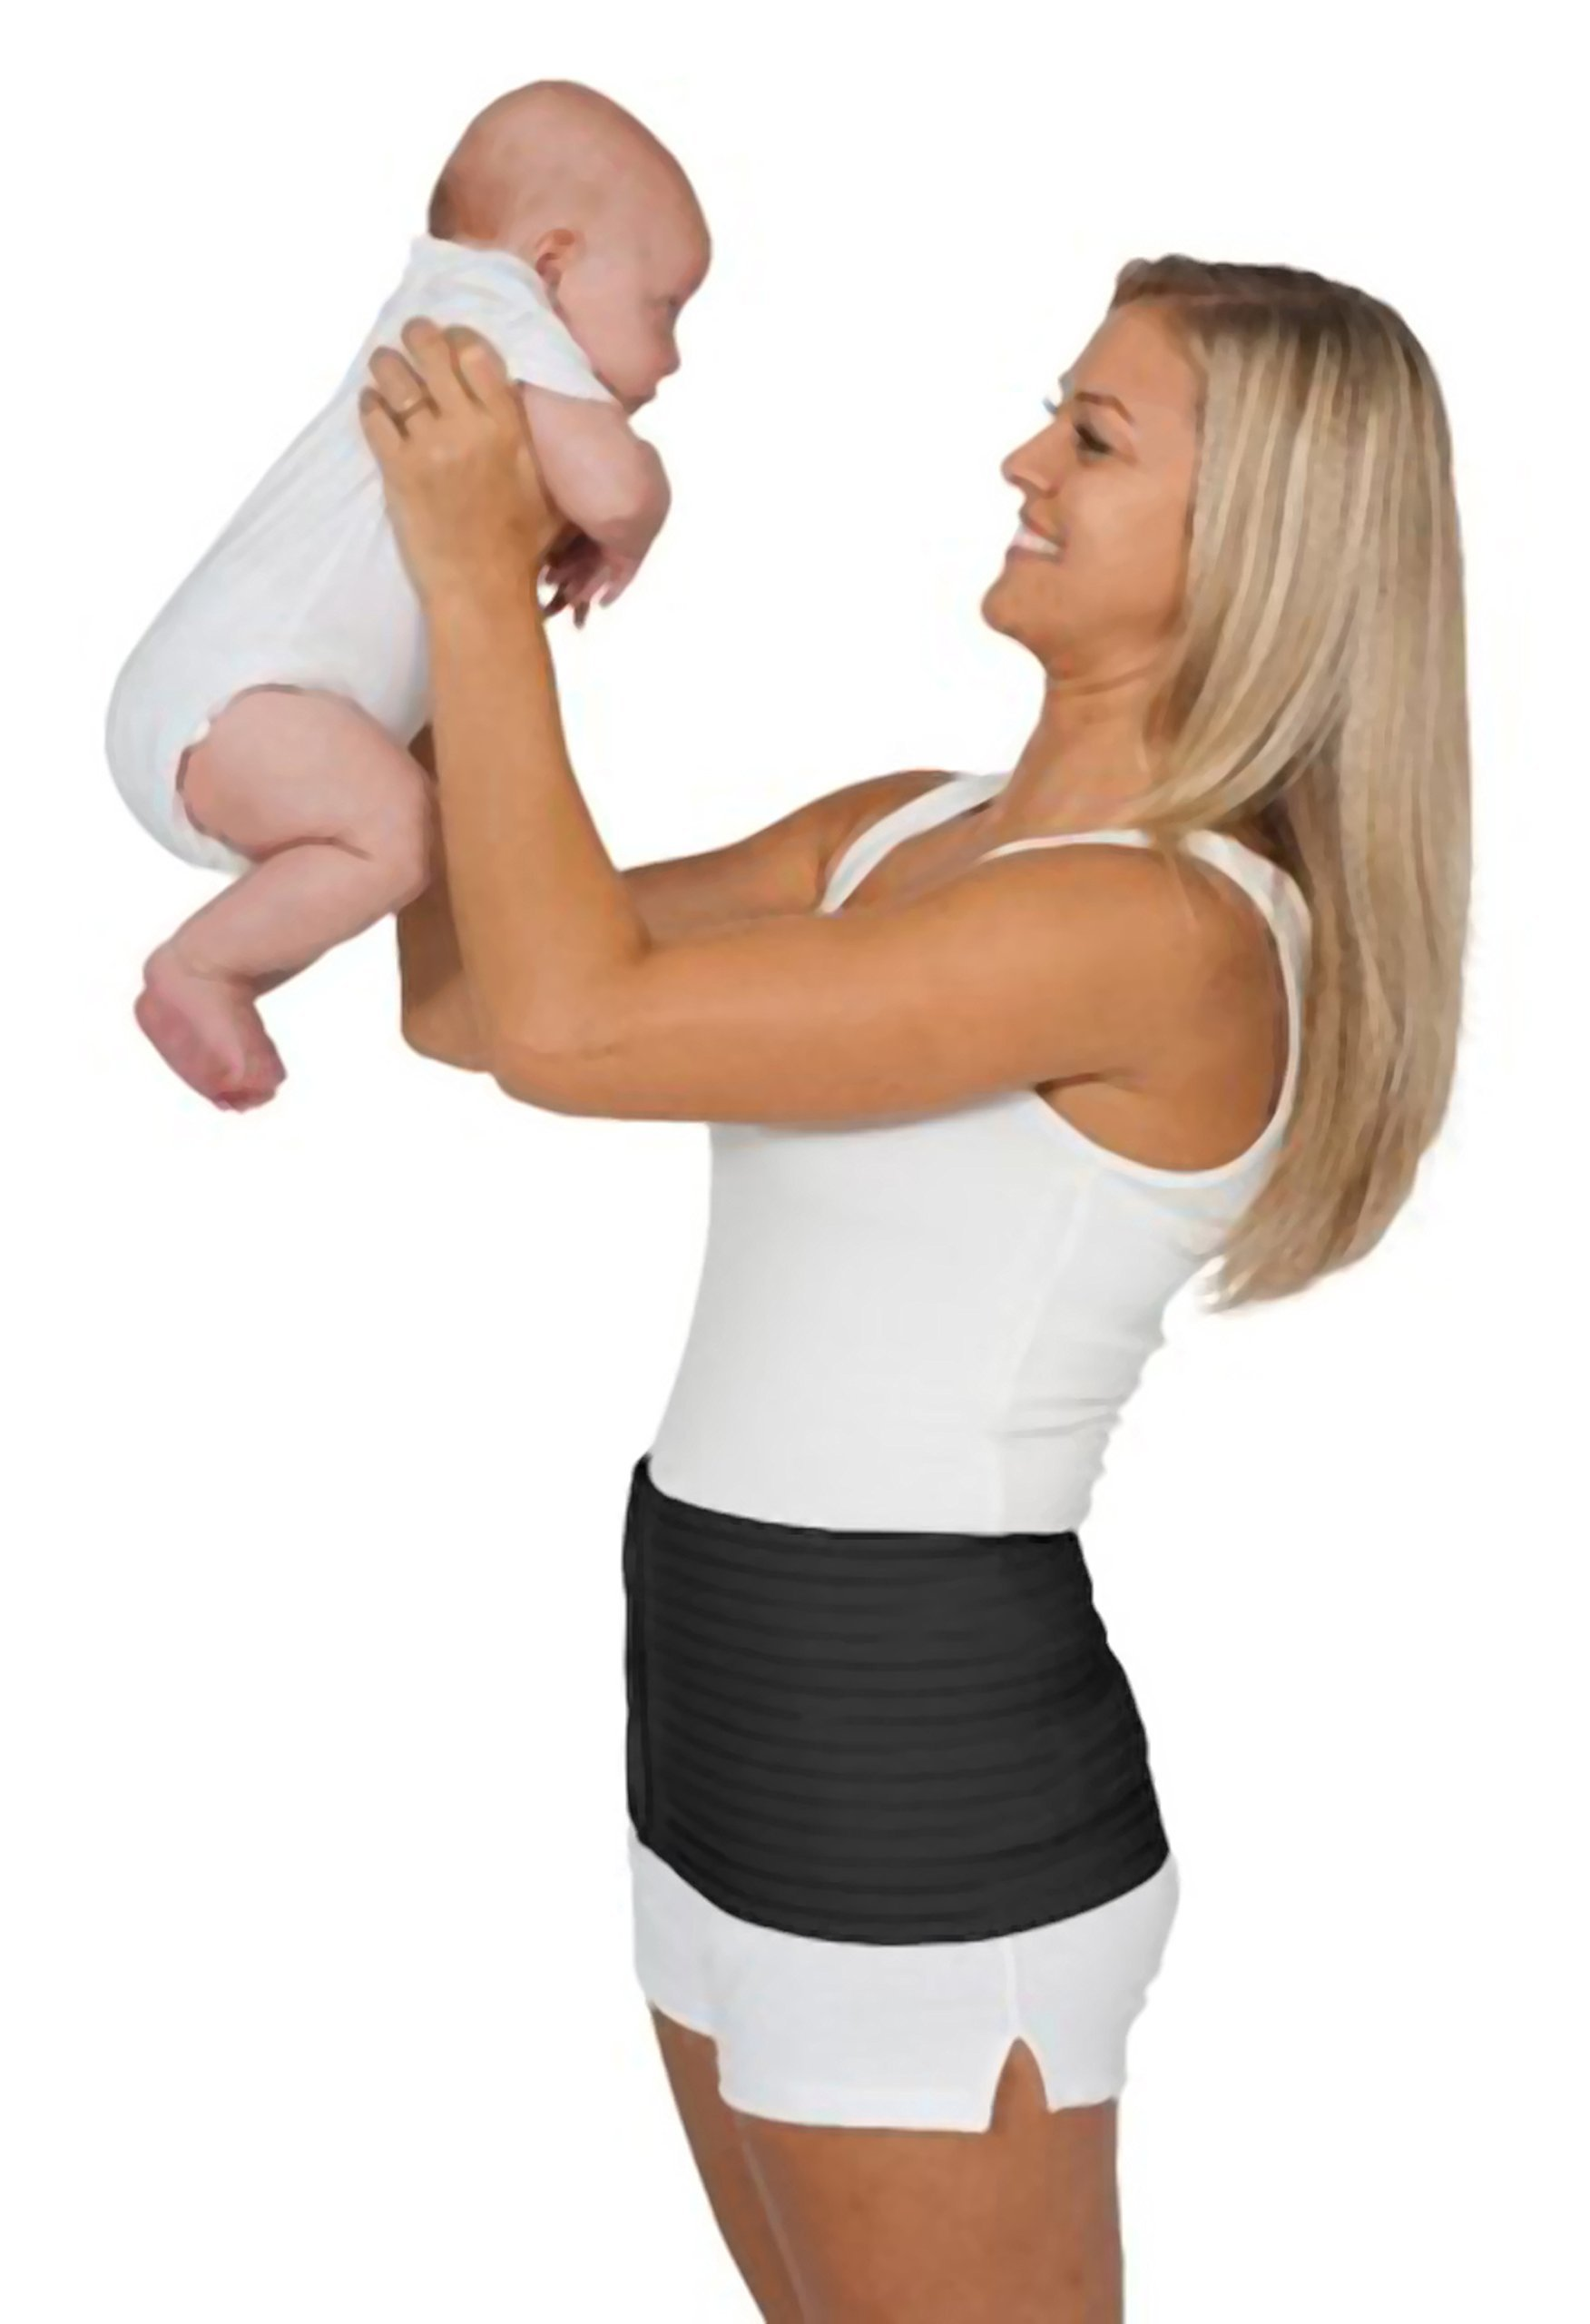 The''Original'' Postpartum Support Belt - by Loving Comfort - Adjustable Abdominal Support for Postnatal and C-Section Recovery - Black - Medium